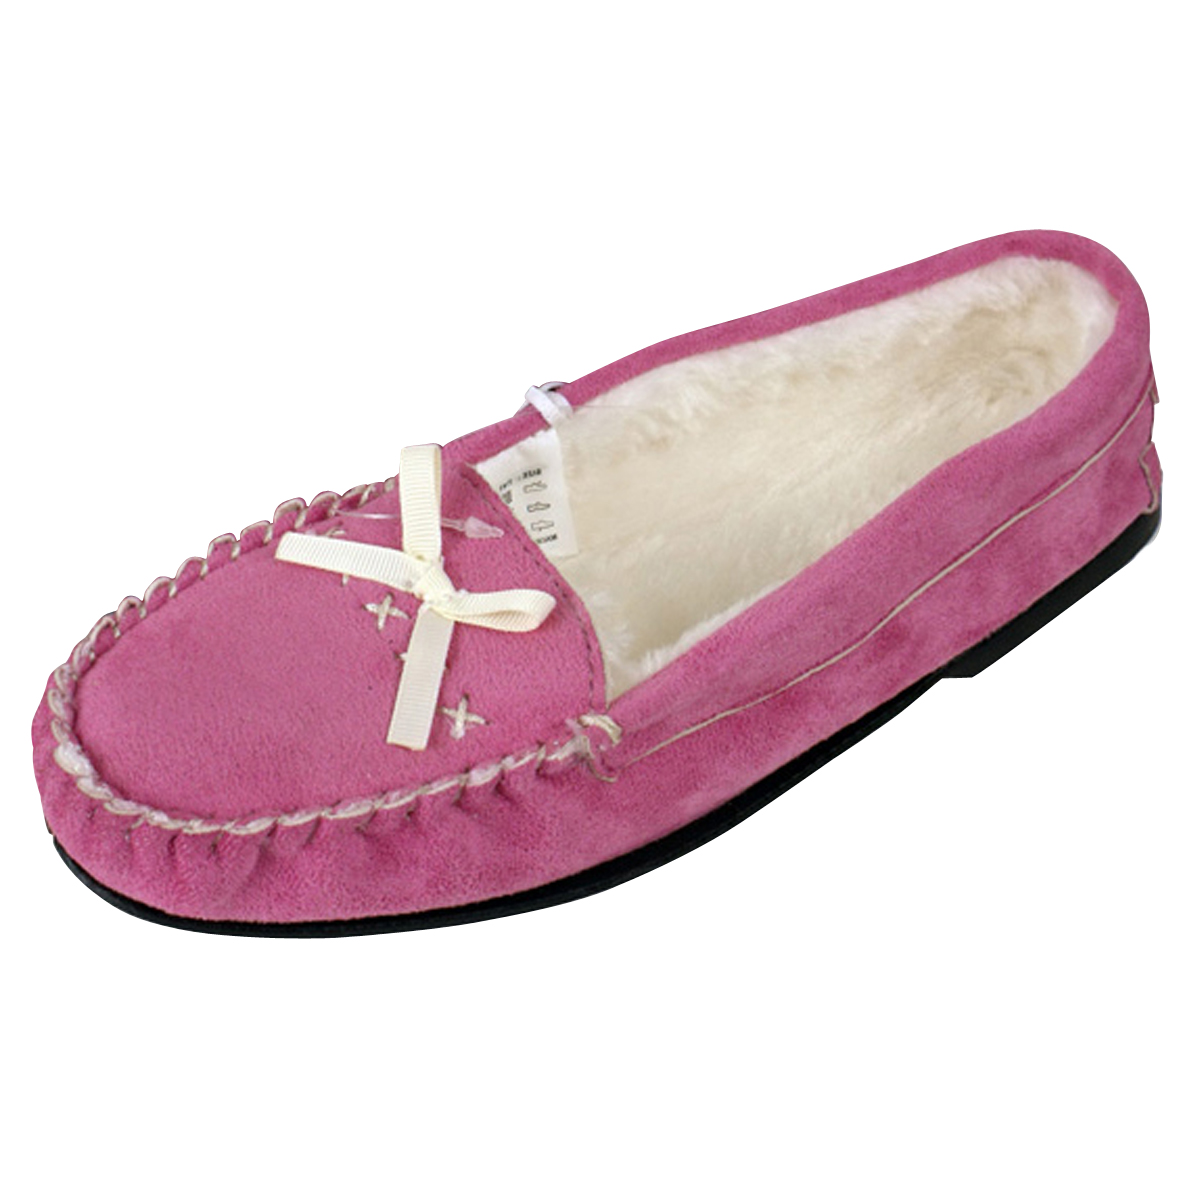 Womens Moccasin Faux Suede Leather Slipper Moccasins